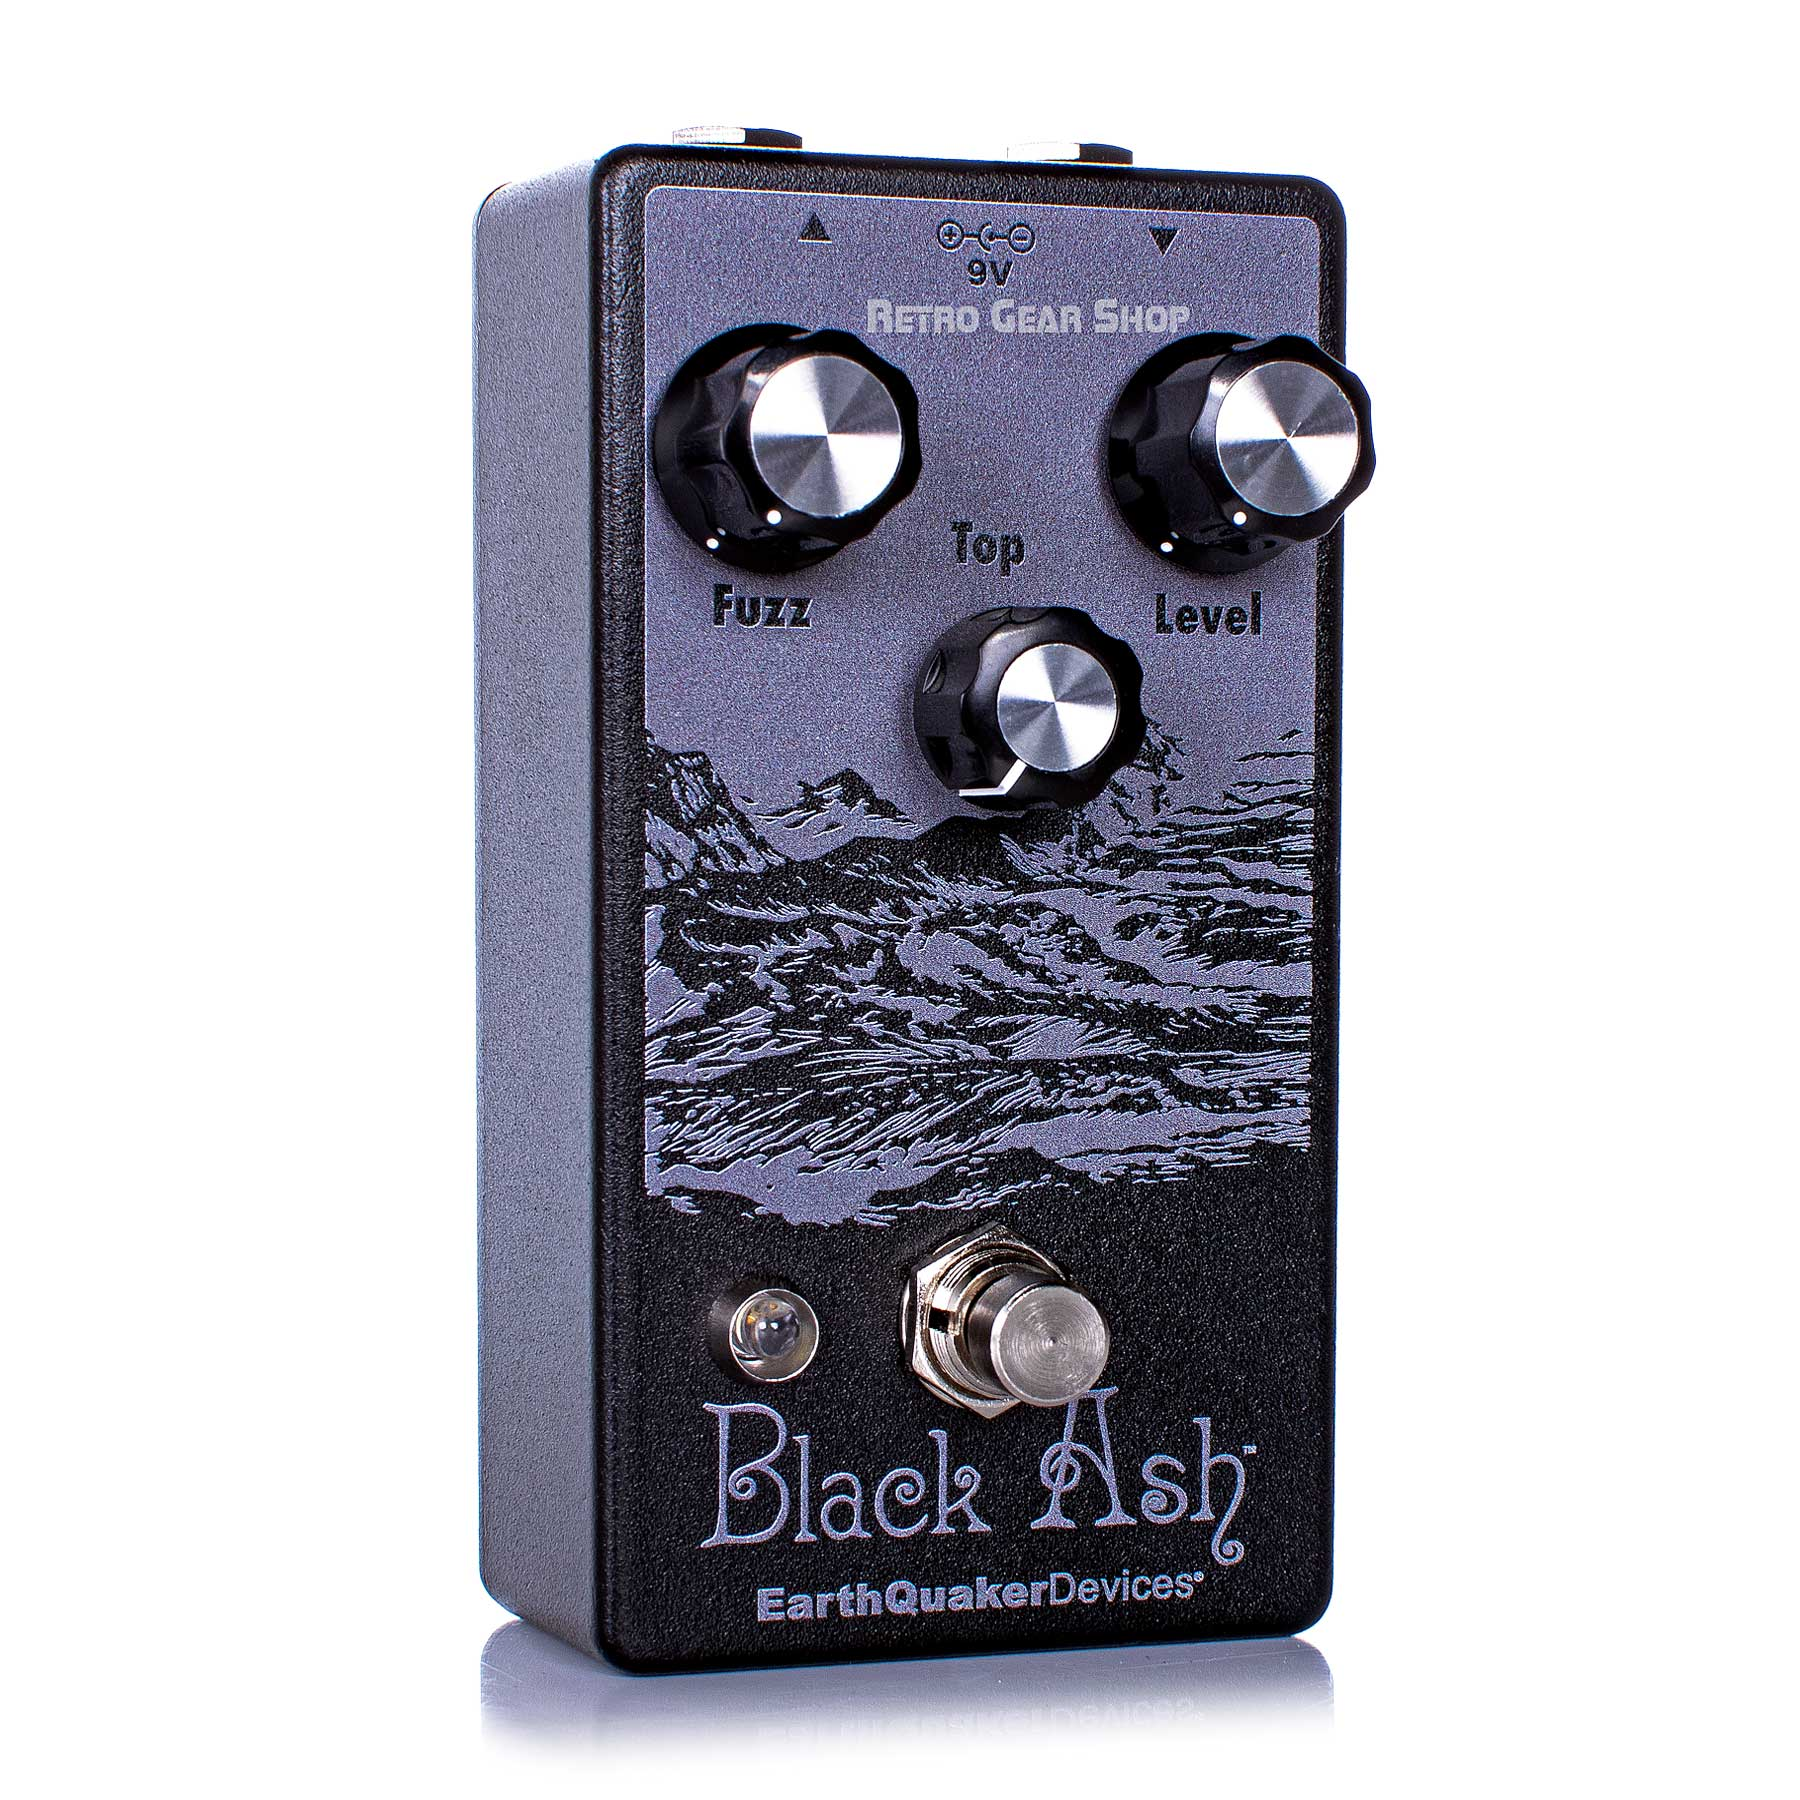 EarthQuaker Devices Black Ash Endangered Fuzz Guitar Effect Pedal Limited Edition